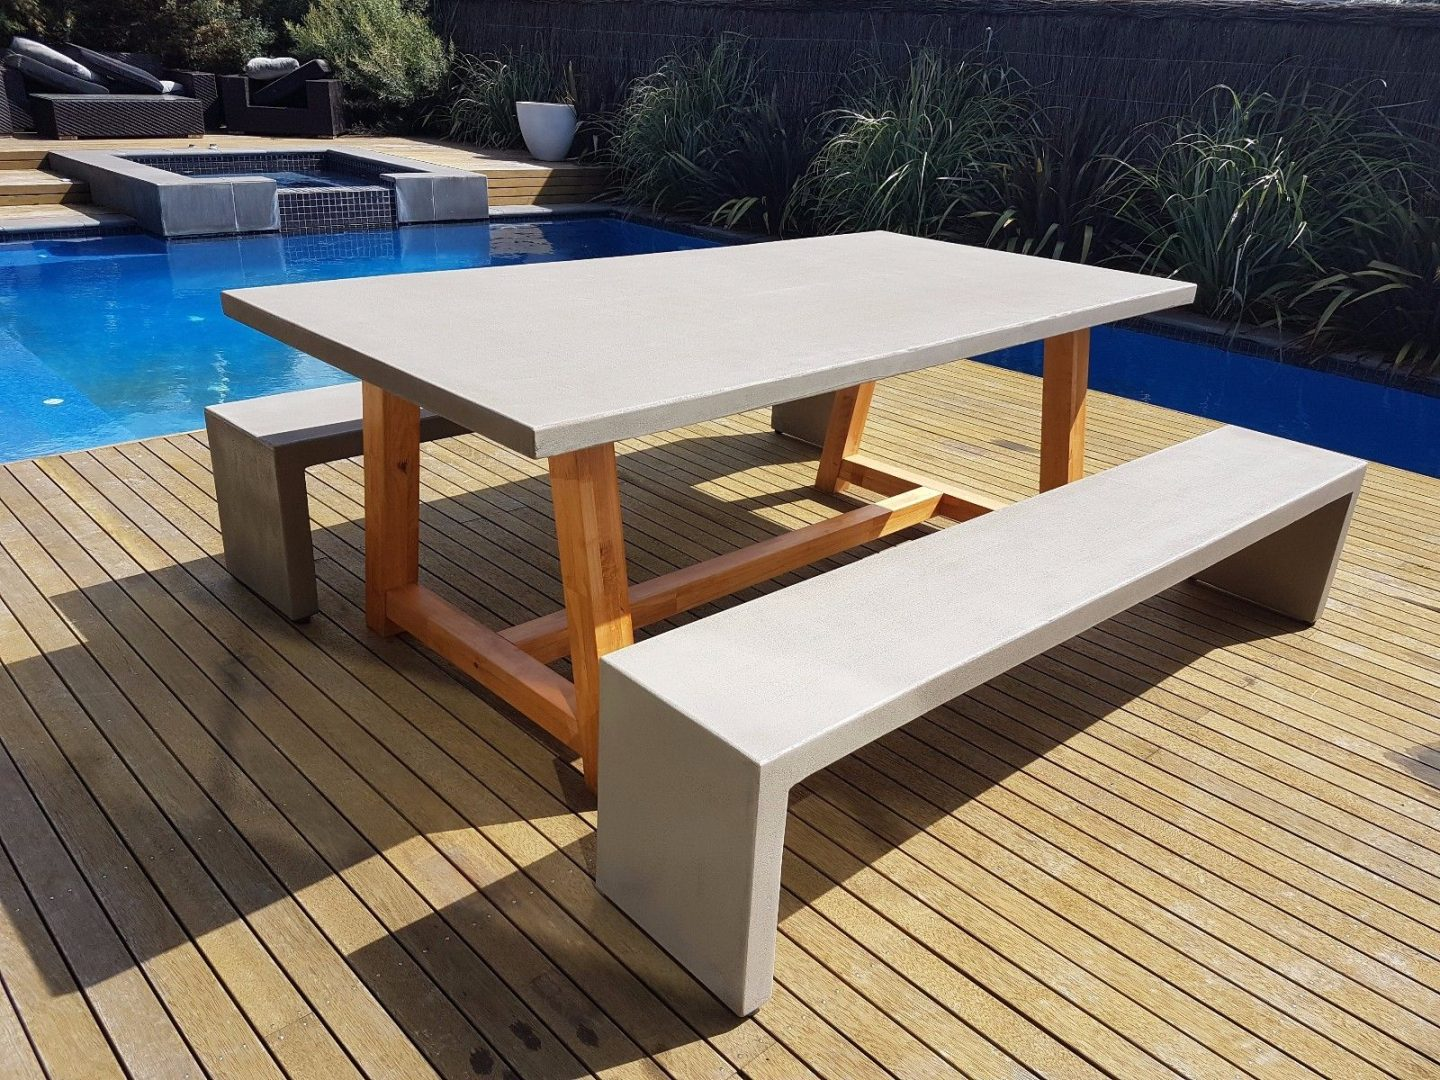 Outdoor Furniture 2mt X 1mt GRC Concrete Table 2 X